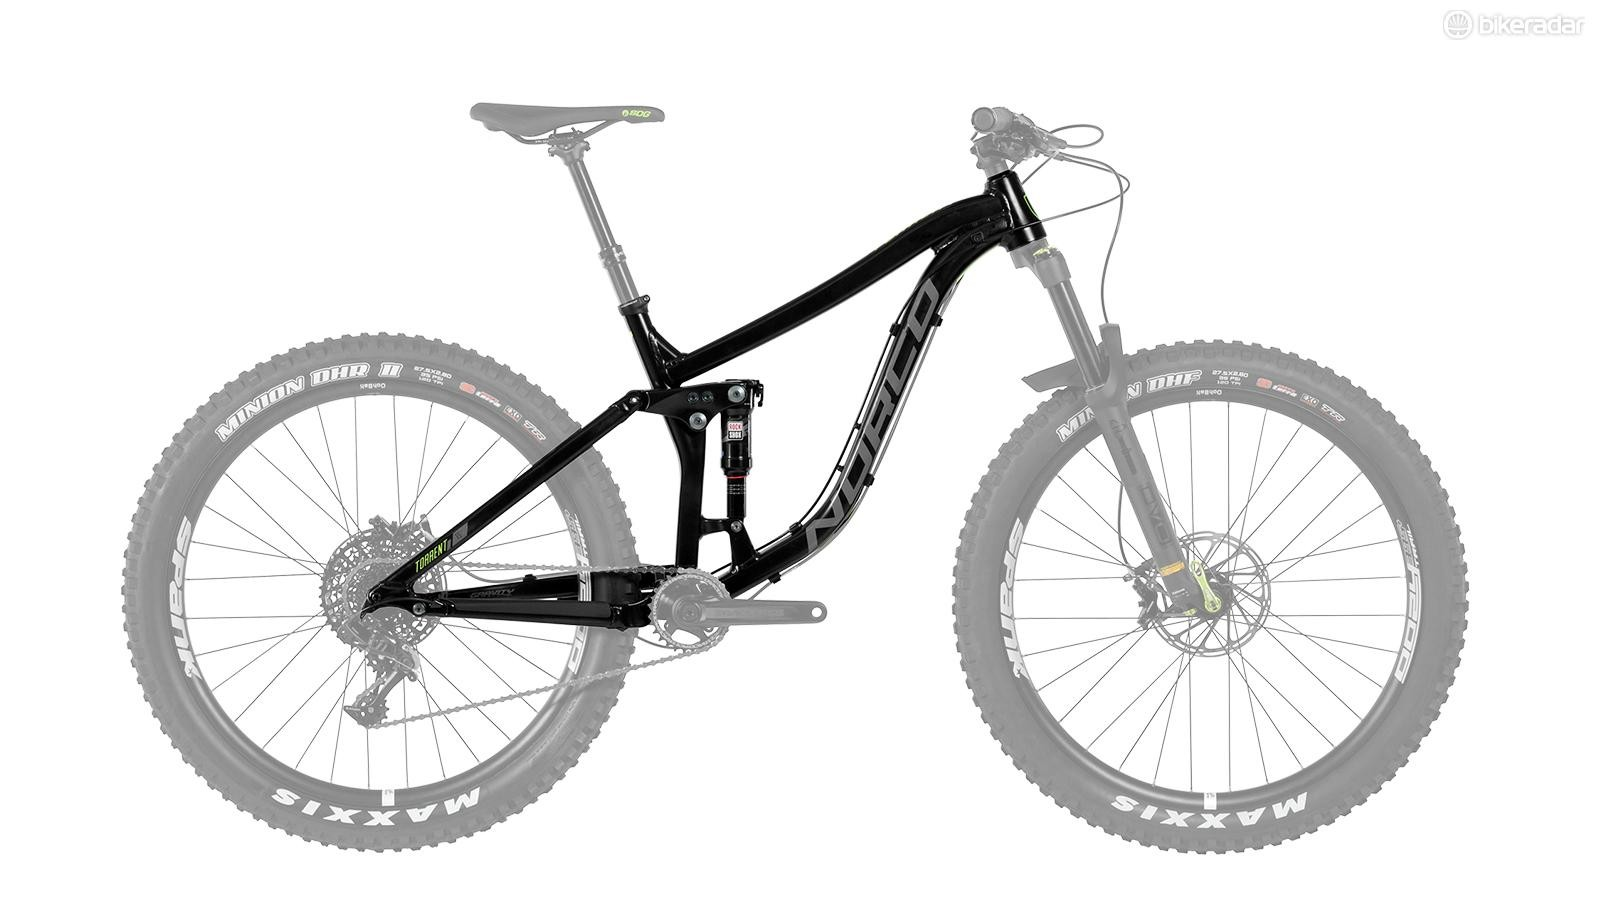 Norco offers the Torrent FS+ as a frame with a Rockshox Deluxe RT Debonair shock